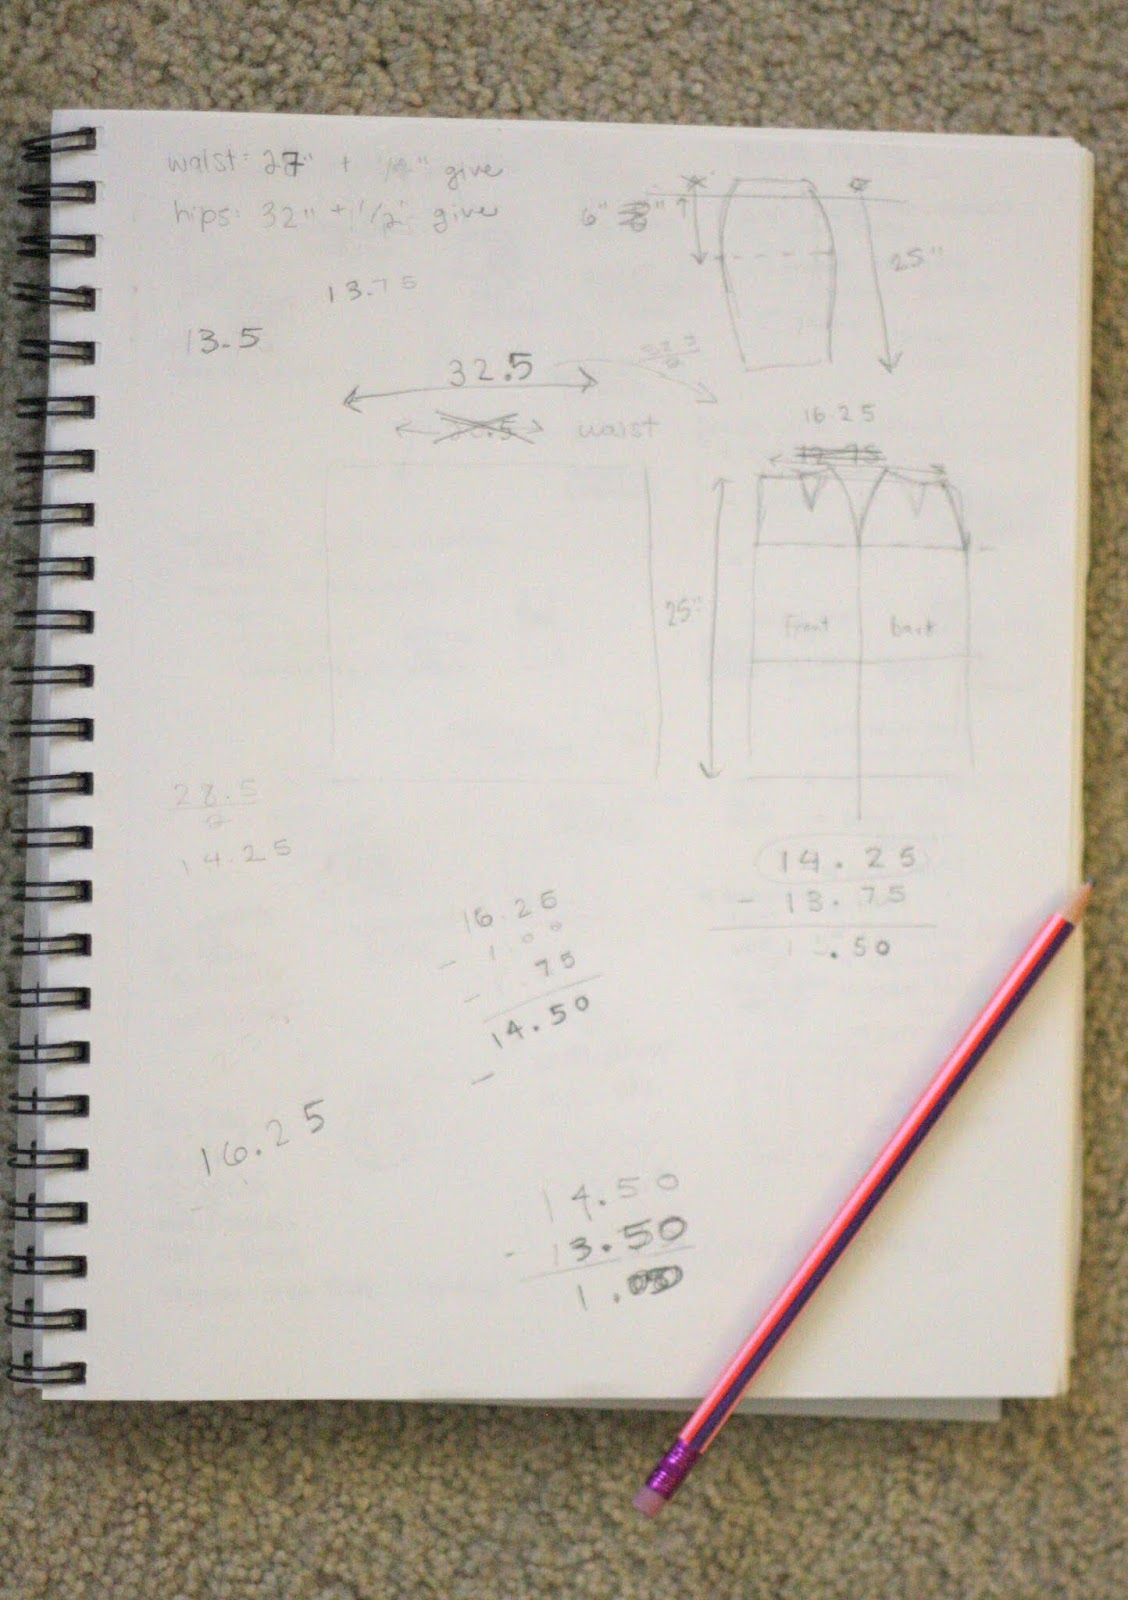 Crafting Zuzzy: Pencil Skirt Part One: Drafting and Cutting